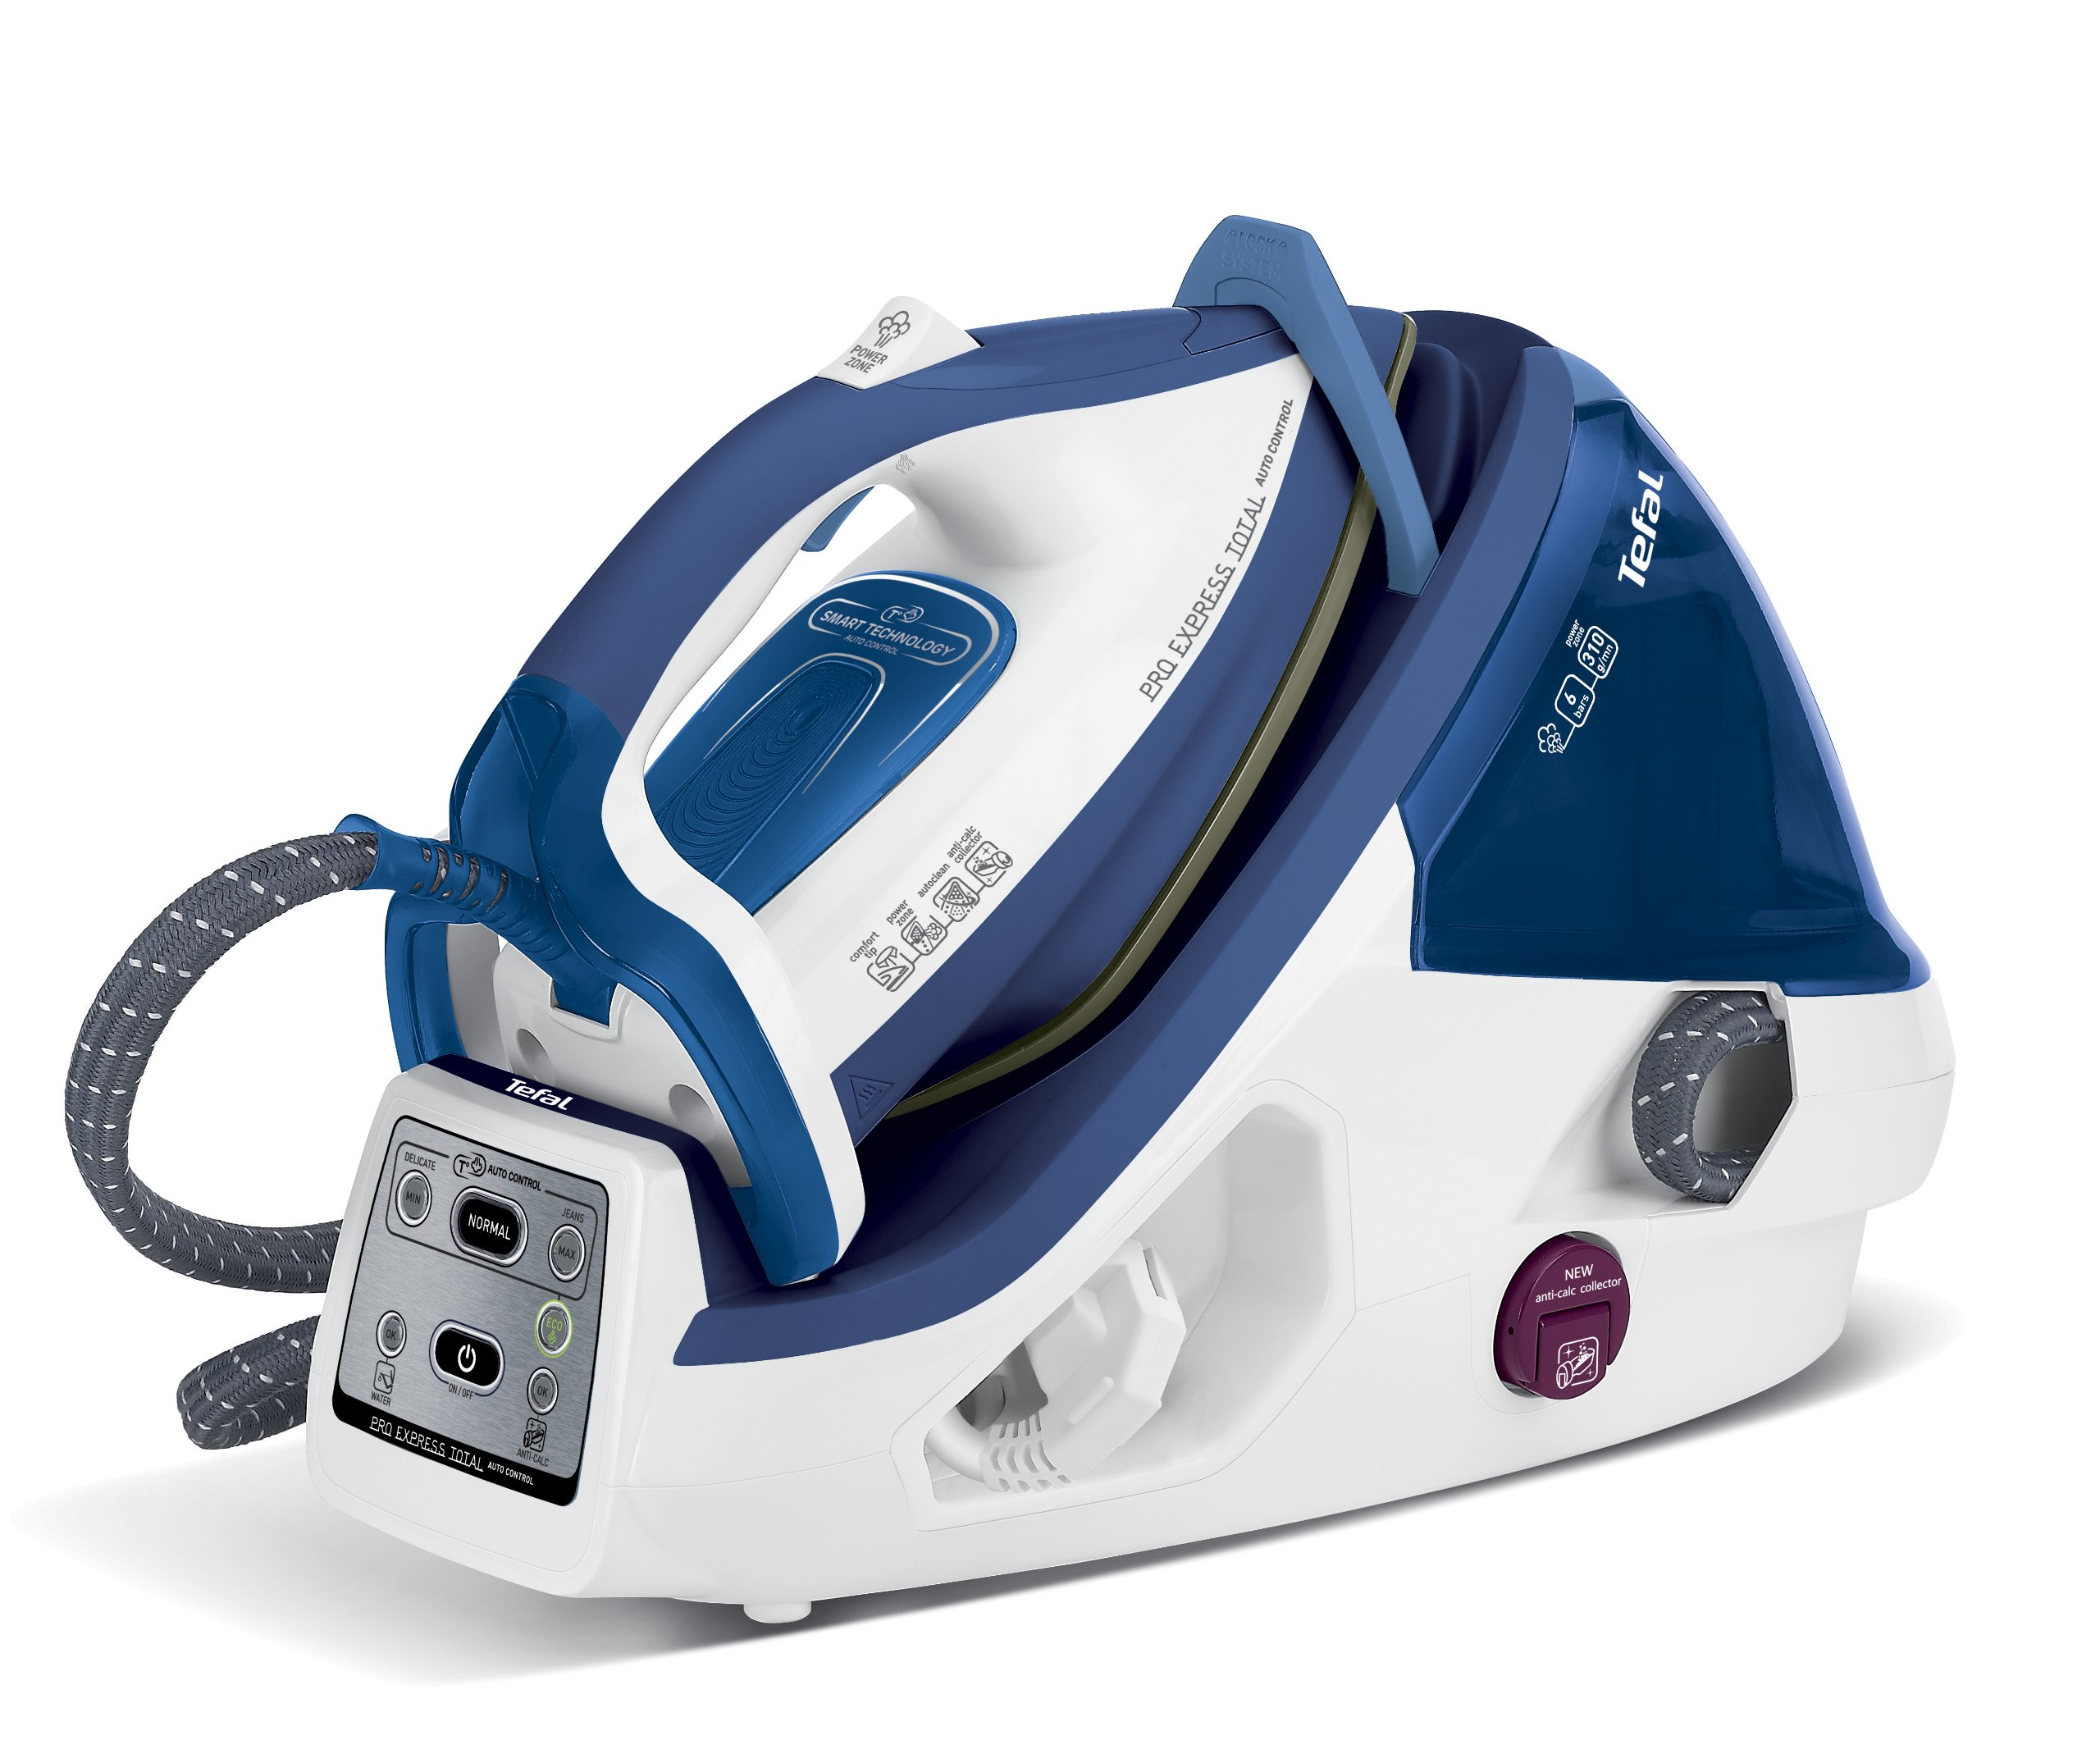 Tefal GV8930 Pro Express Total Auto Control Steam Generator Iron - Blue/White